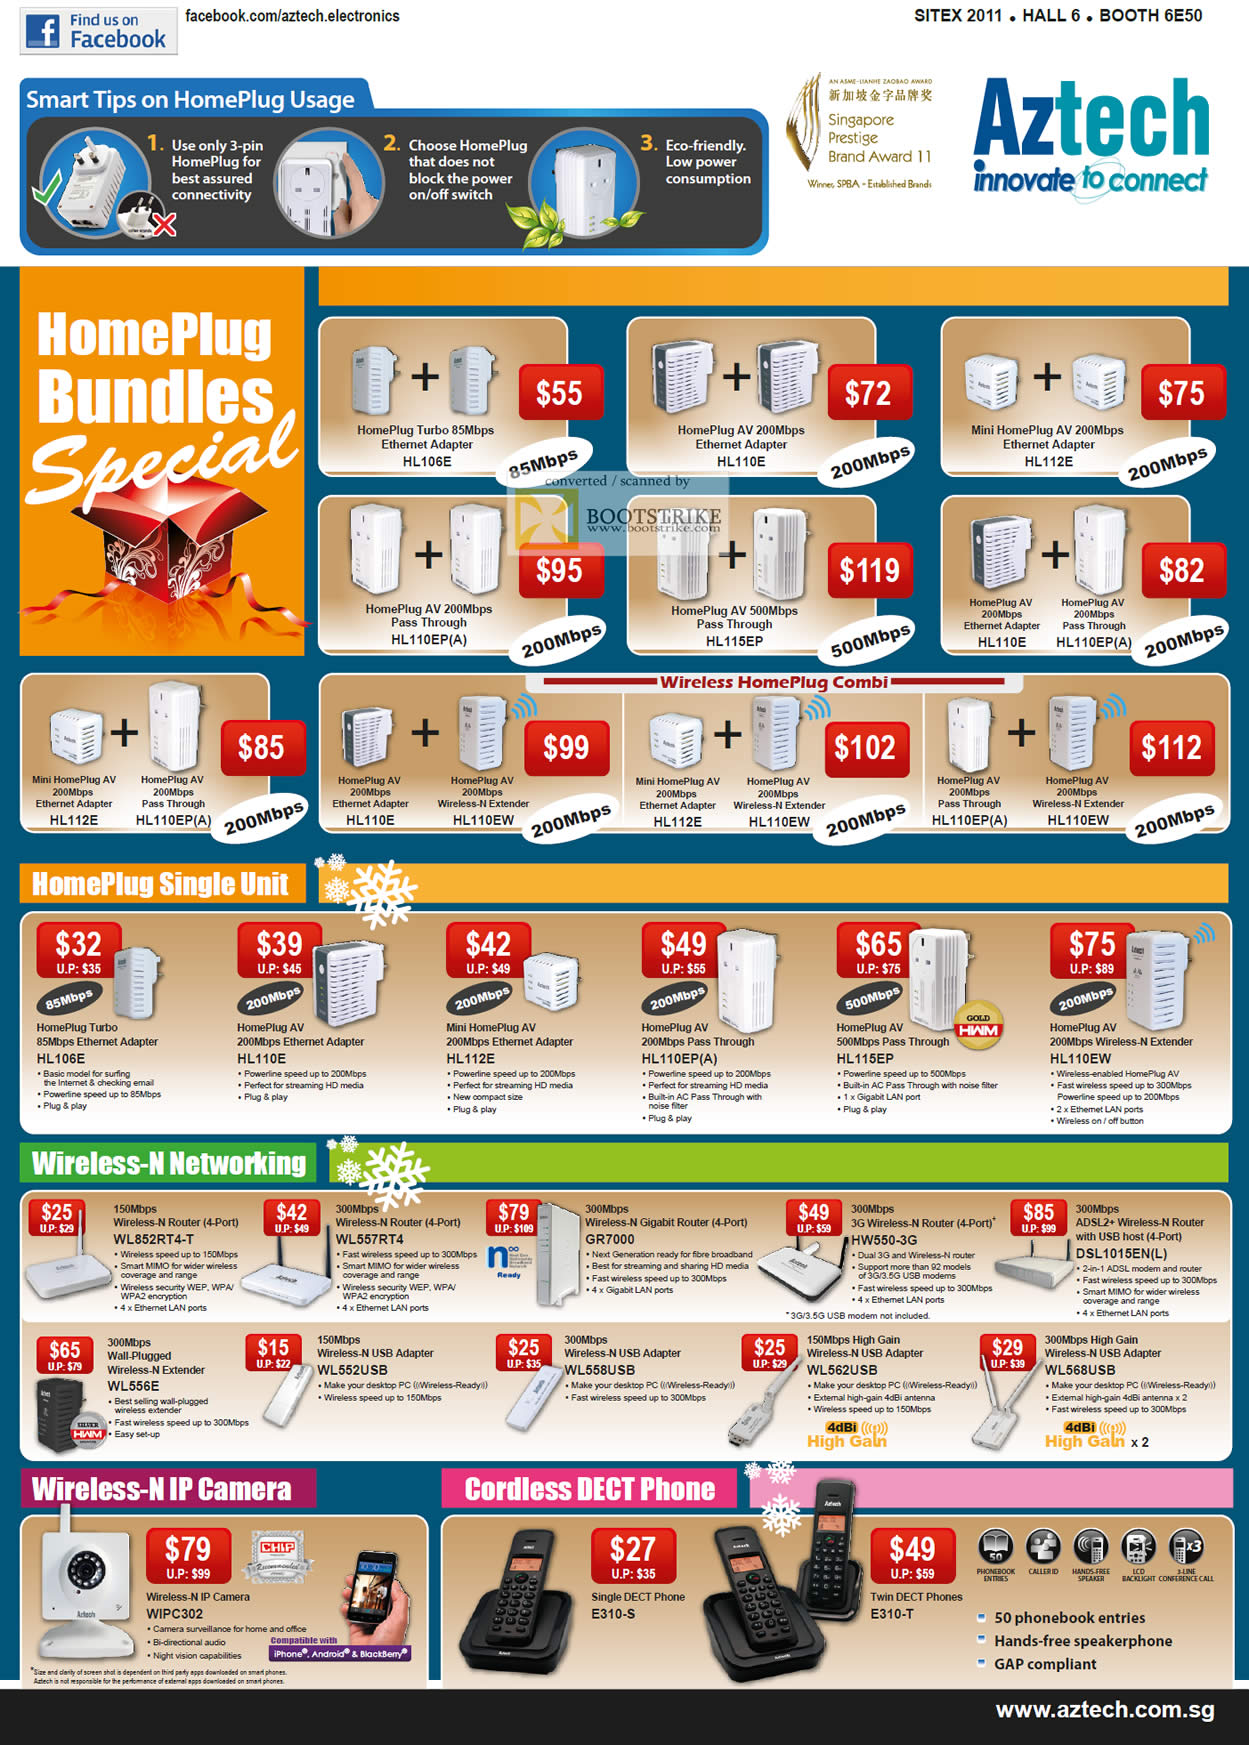 SITEX 2011 price list image brochure of Aztech Networking Homeplug, HL106E, HL110E, HL112E, HL110EP A, HL115EP, Wireless Router, Range Extender, USB Adapter, IPCam, Cordless DECT Phone